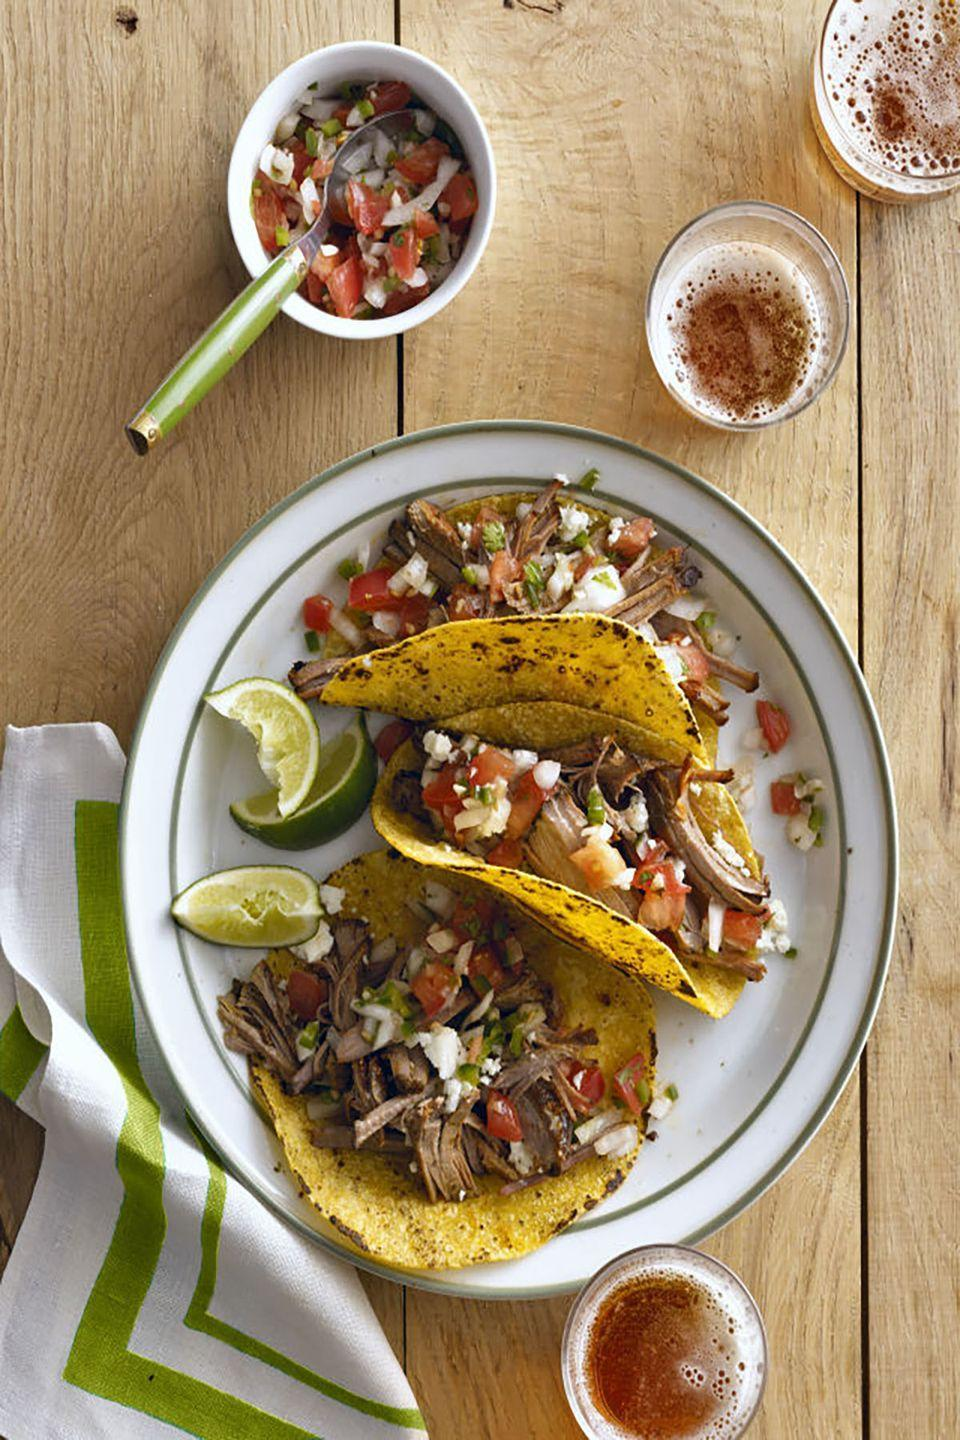 """<p>If you're both fans of brisket and Mexican fare, then this is the perfect Valentine's dinner for you.</p><p><strong><a href=""""https://www.countryliving.com/food-drinks/recipes/a5499/cowboy-brisket-recipe-clx0914/"""" rel=""""nofollow noopener"""" target=""""_blank"""" data-ylk=""""slk:Get the recipe"""" class=""""link rapid-noclick-resp"""">Get the recipe</a>.</strong></p>"""